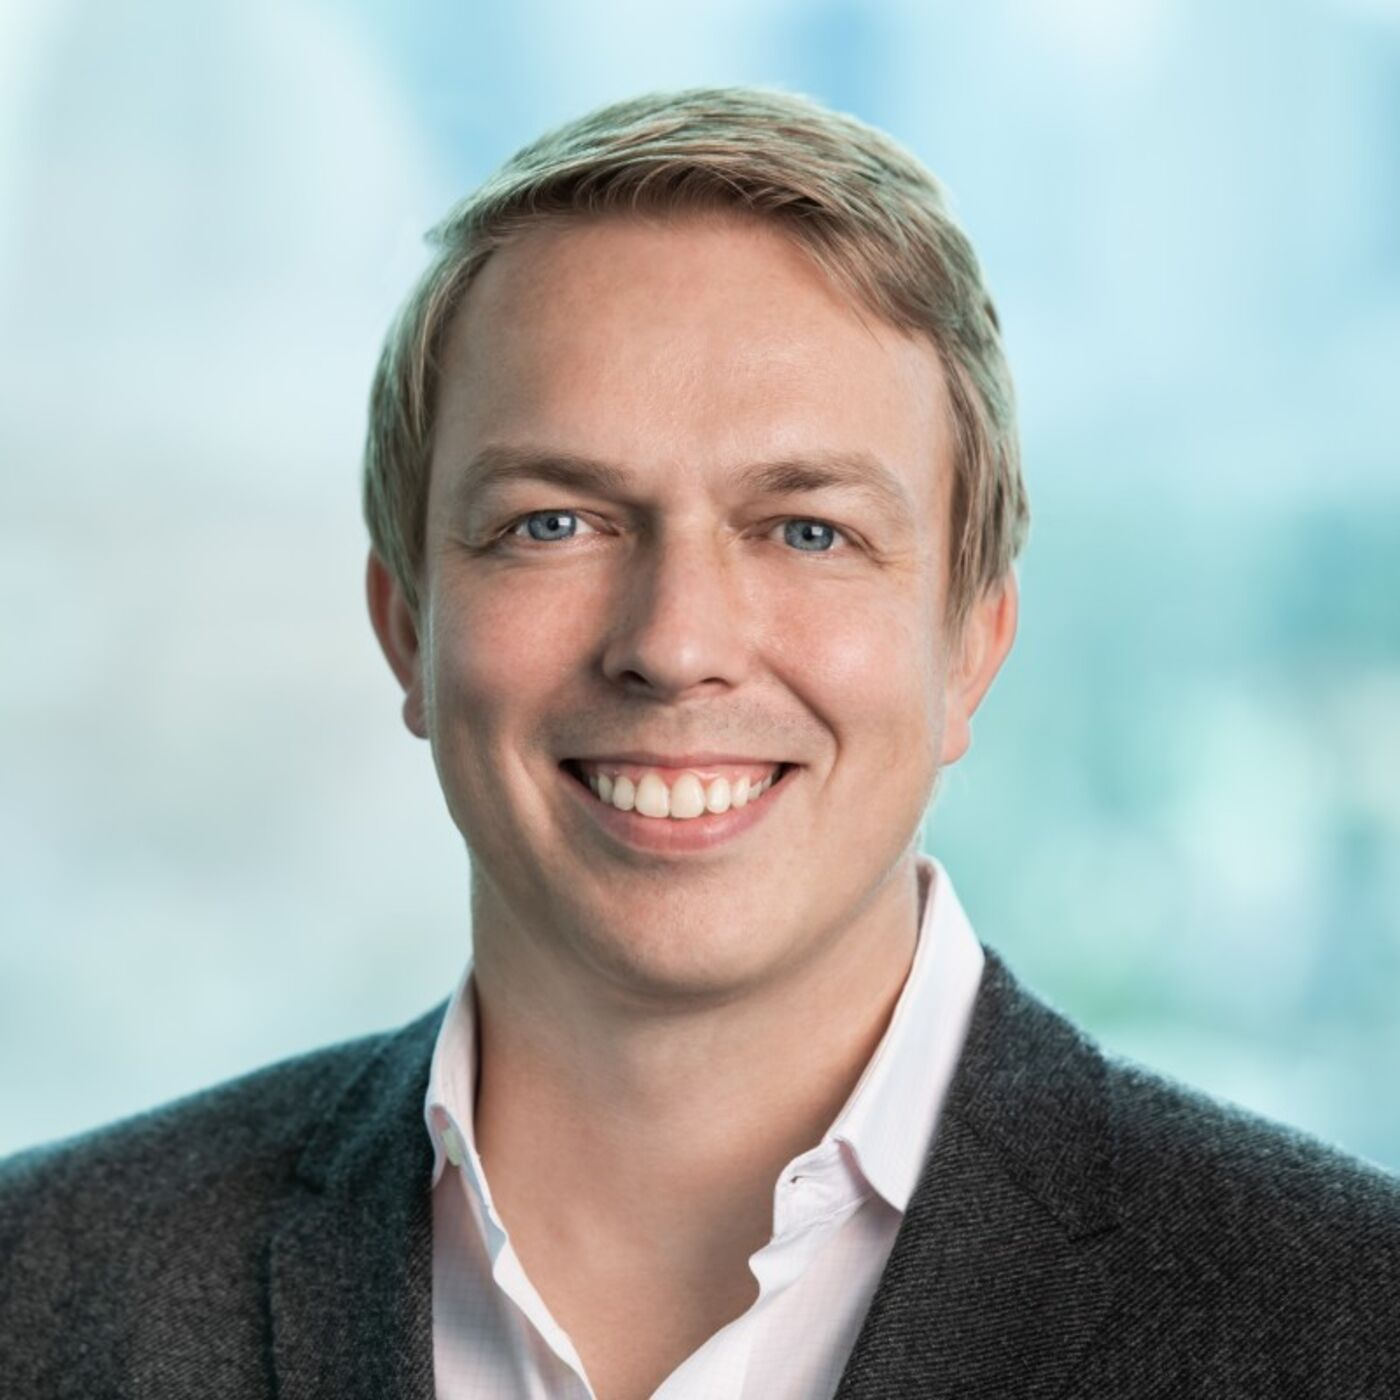 Jani Tuomi and His Inspiring Journey Leading imaware in the Healthcare Sector